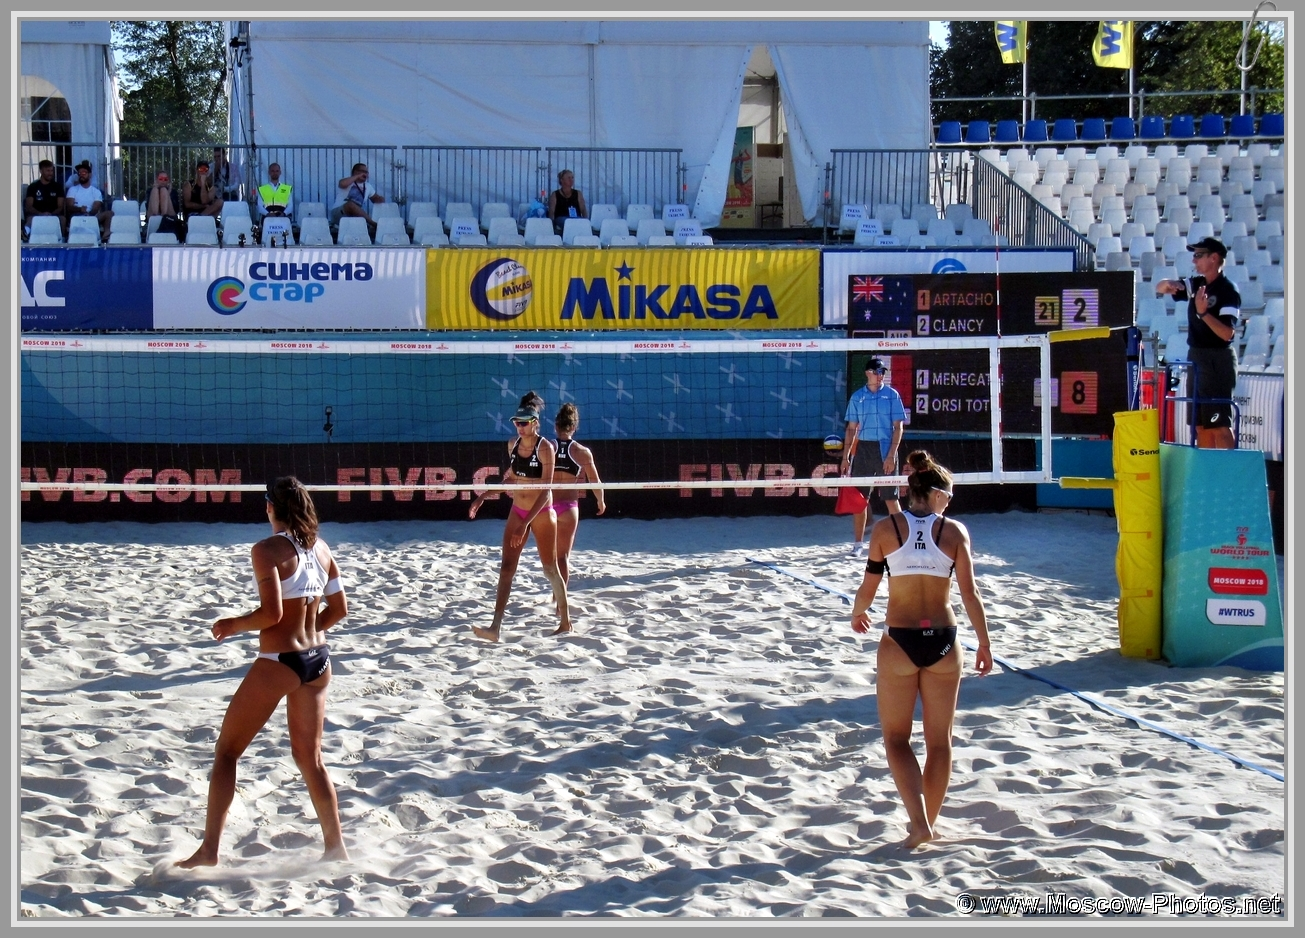 Marta Menegatti and Viktoria Orsi Toth - Italian Team at FIVB Beach Volleyball World Tour  2018